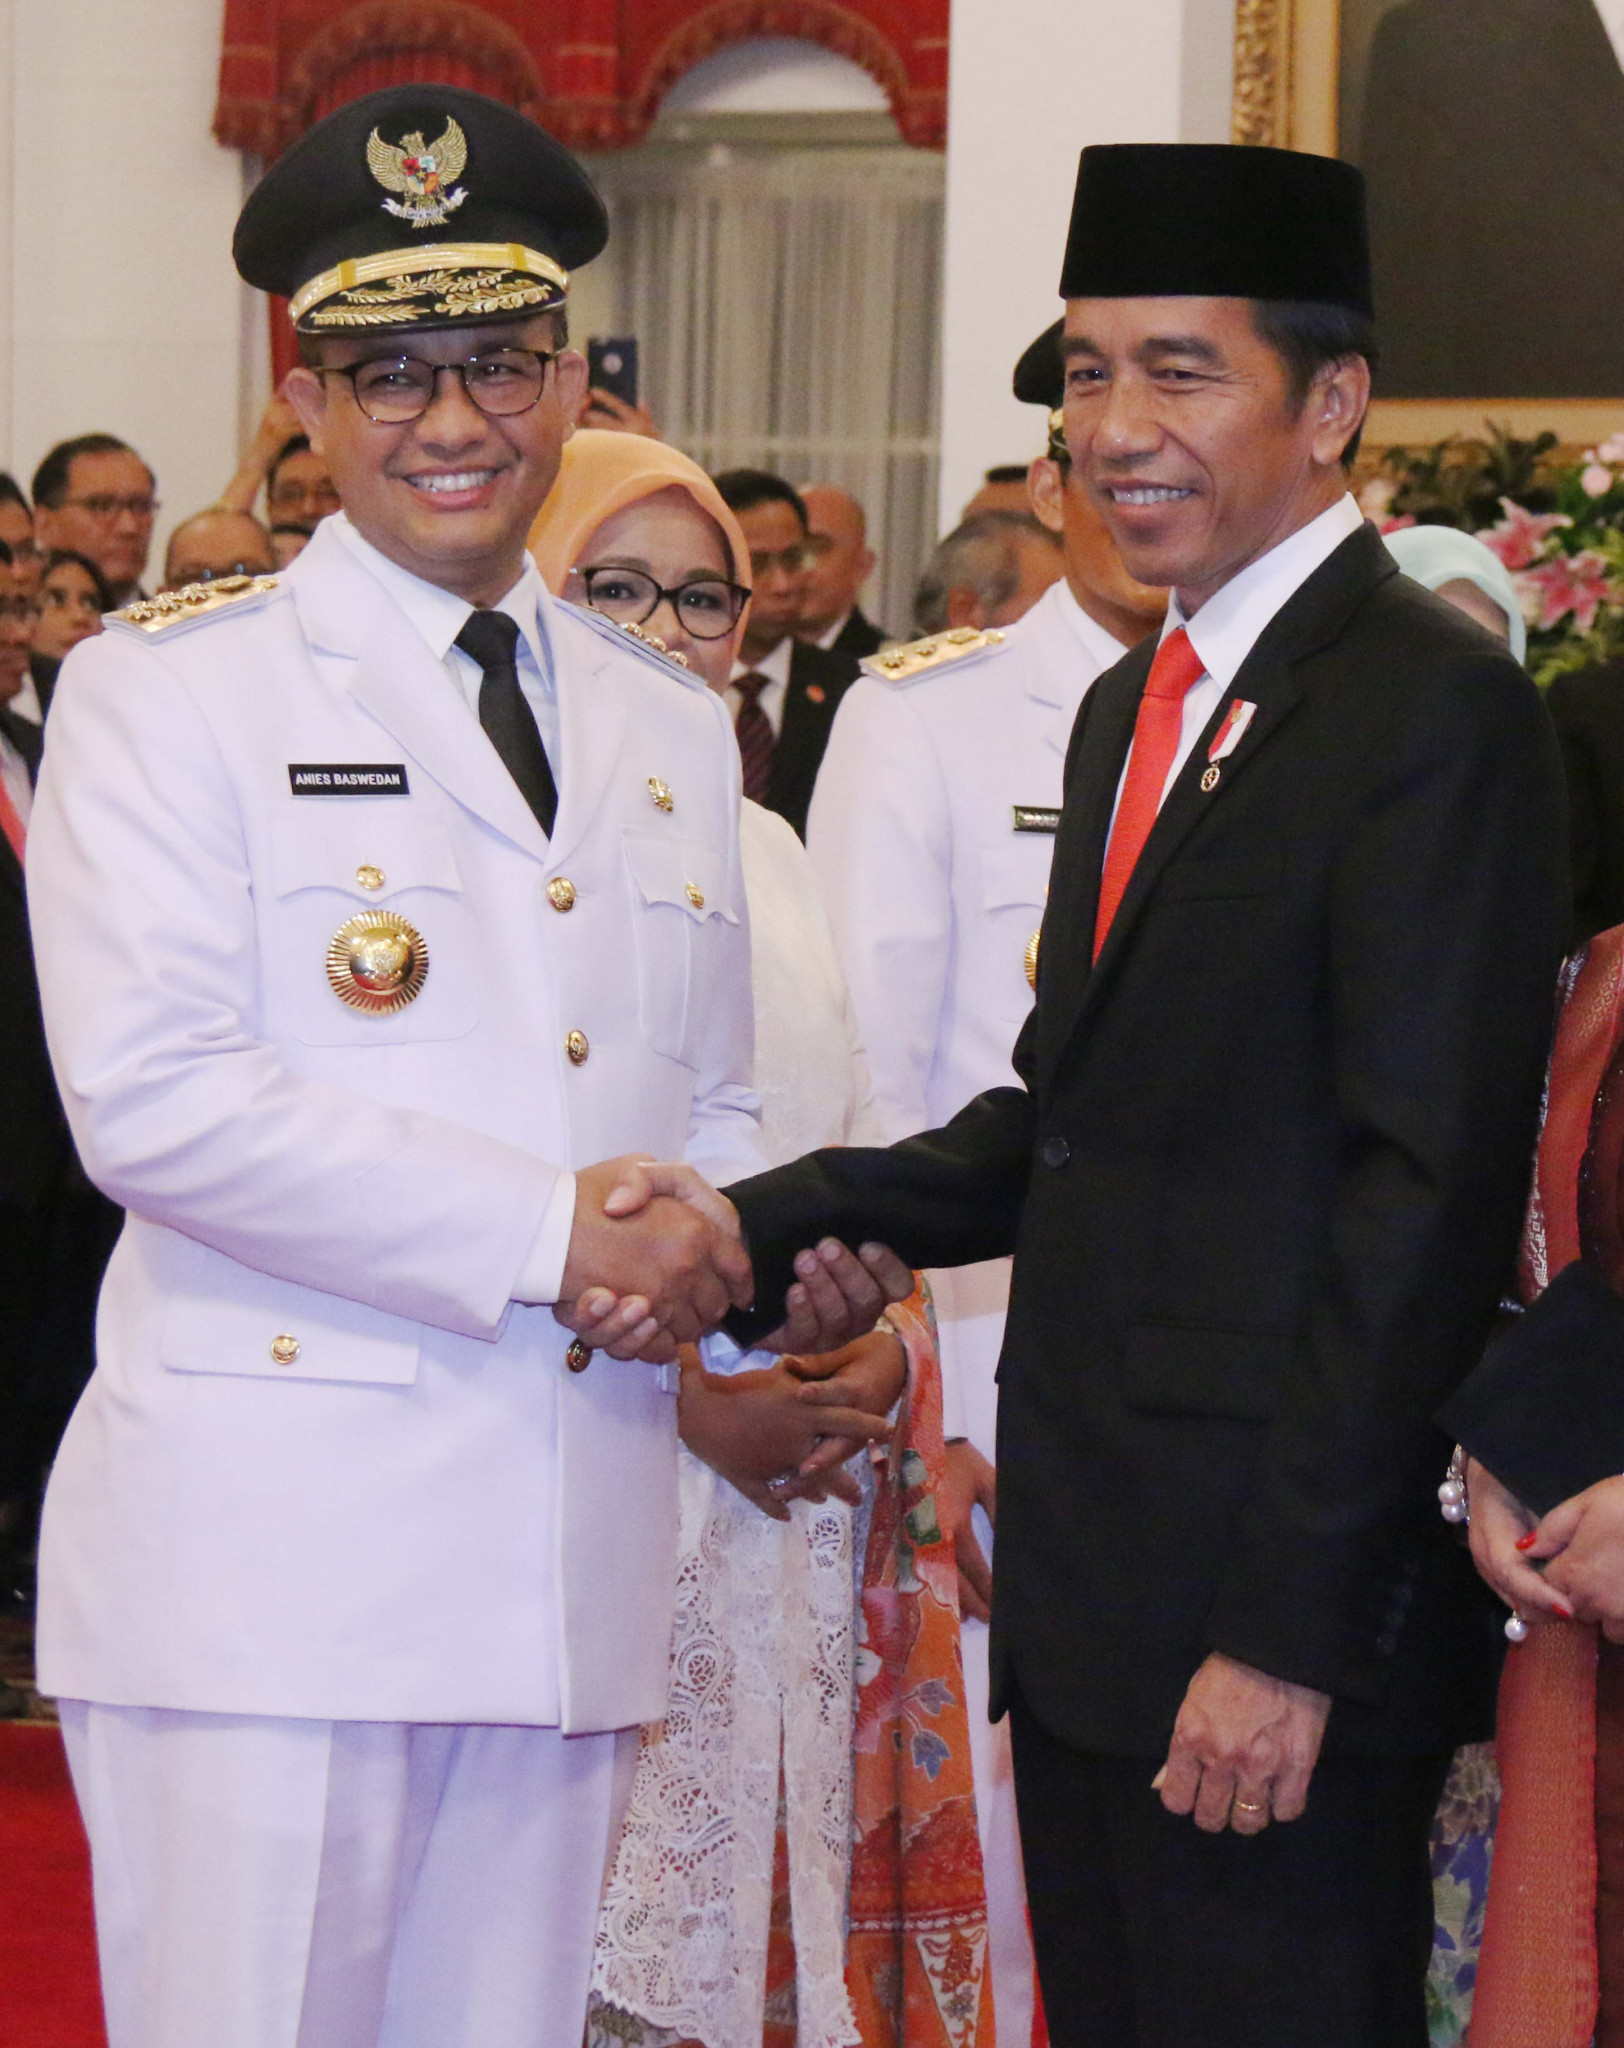 Anies Baswedan, pictured on the left here with Indonesia President Joko Widodo, is the current Governor of Jakarta ©Getty Images